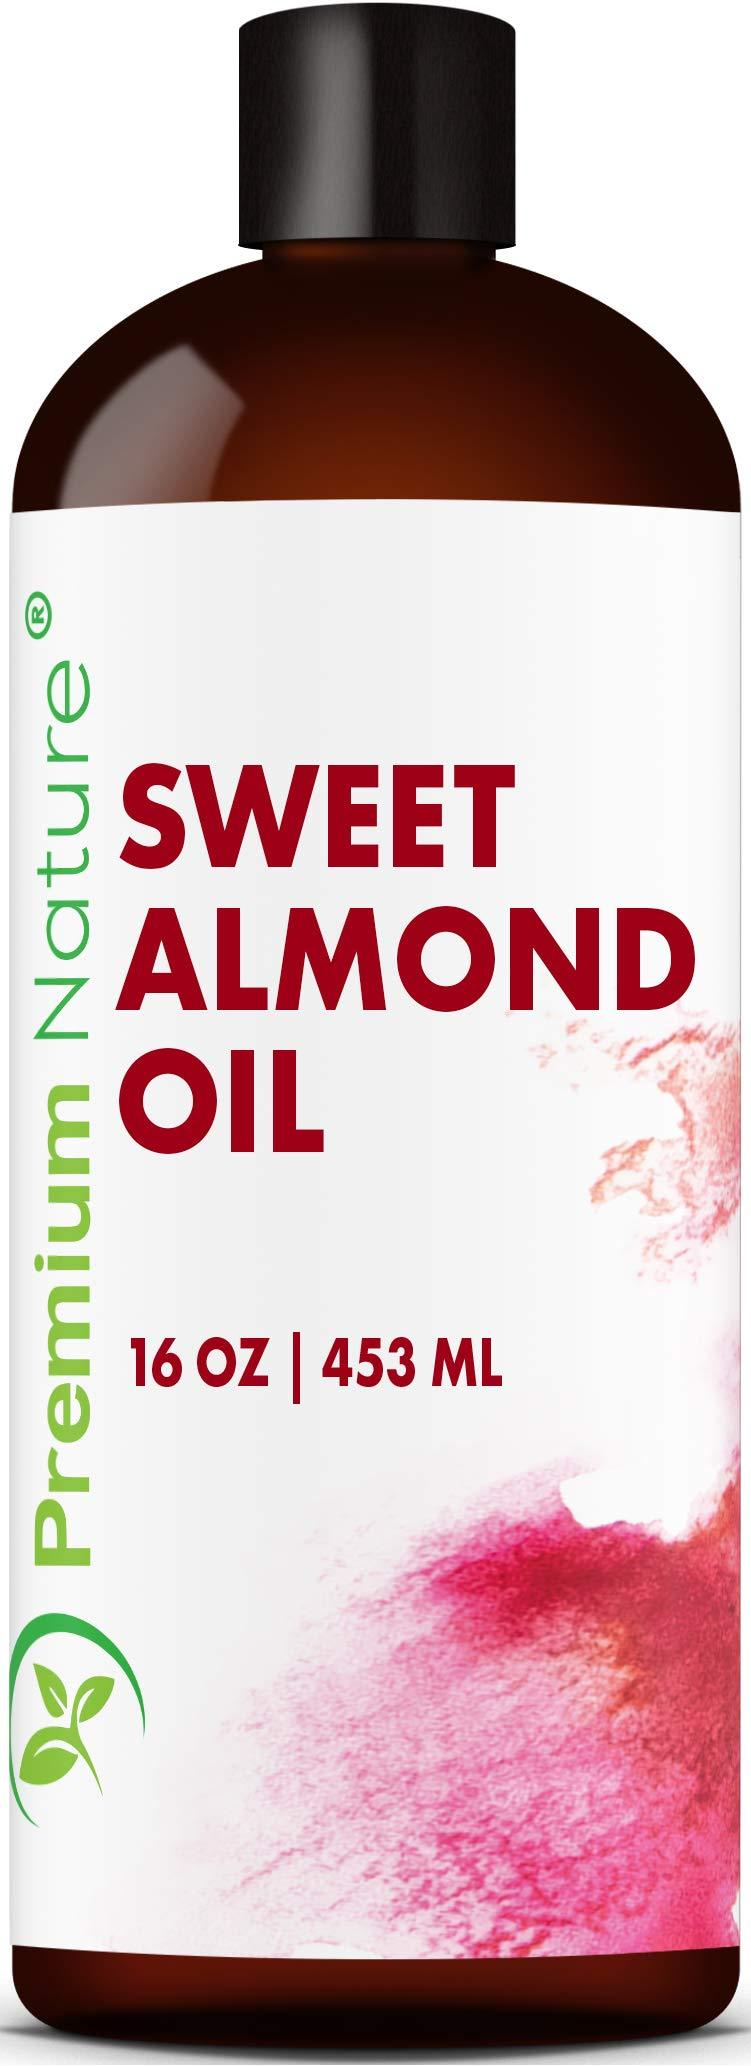 Sweet Almond Oil Carrier Oil - Cold Pressed Pure Natural Body Massage Oils for Essential Oils Mixing, Baby Oil Dry Skin Face Moisturizer Eye Makeup Remover Healthy Nails Cleansing Properties 16 oz 1 pack